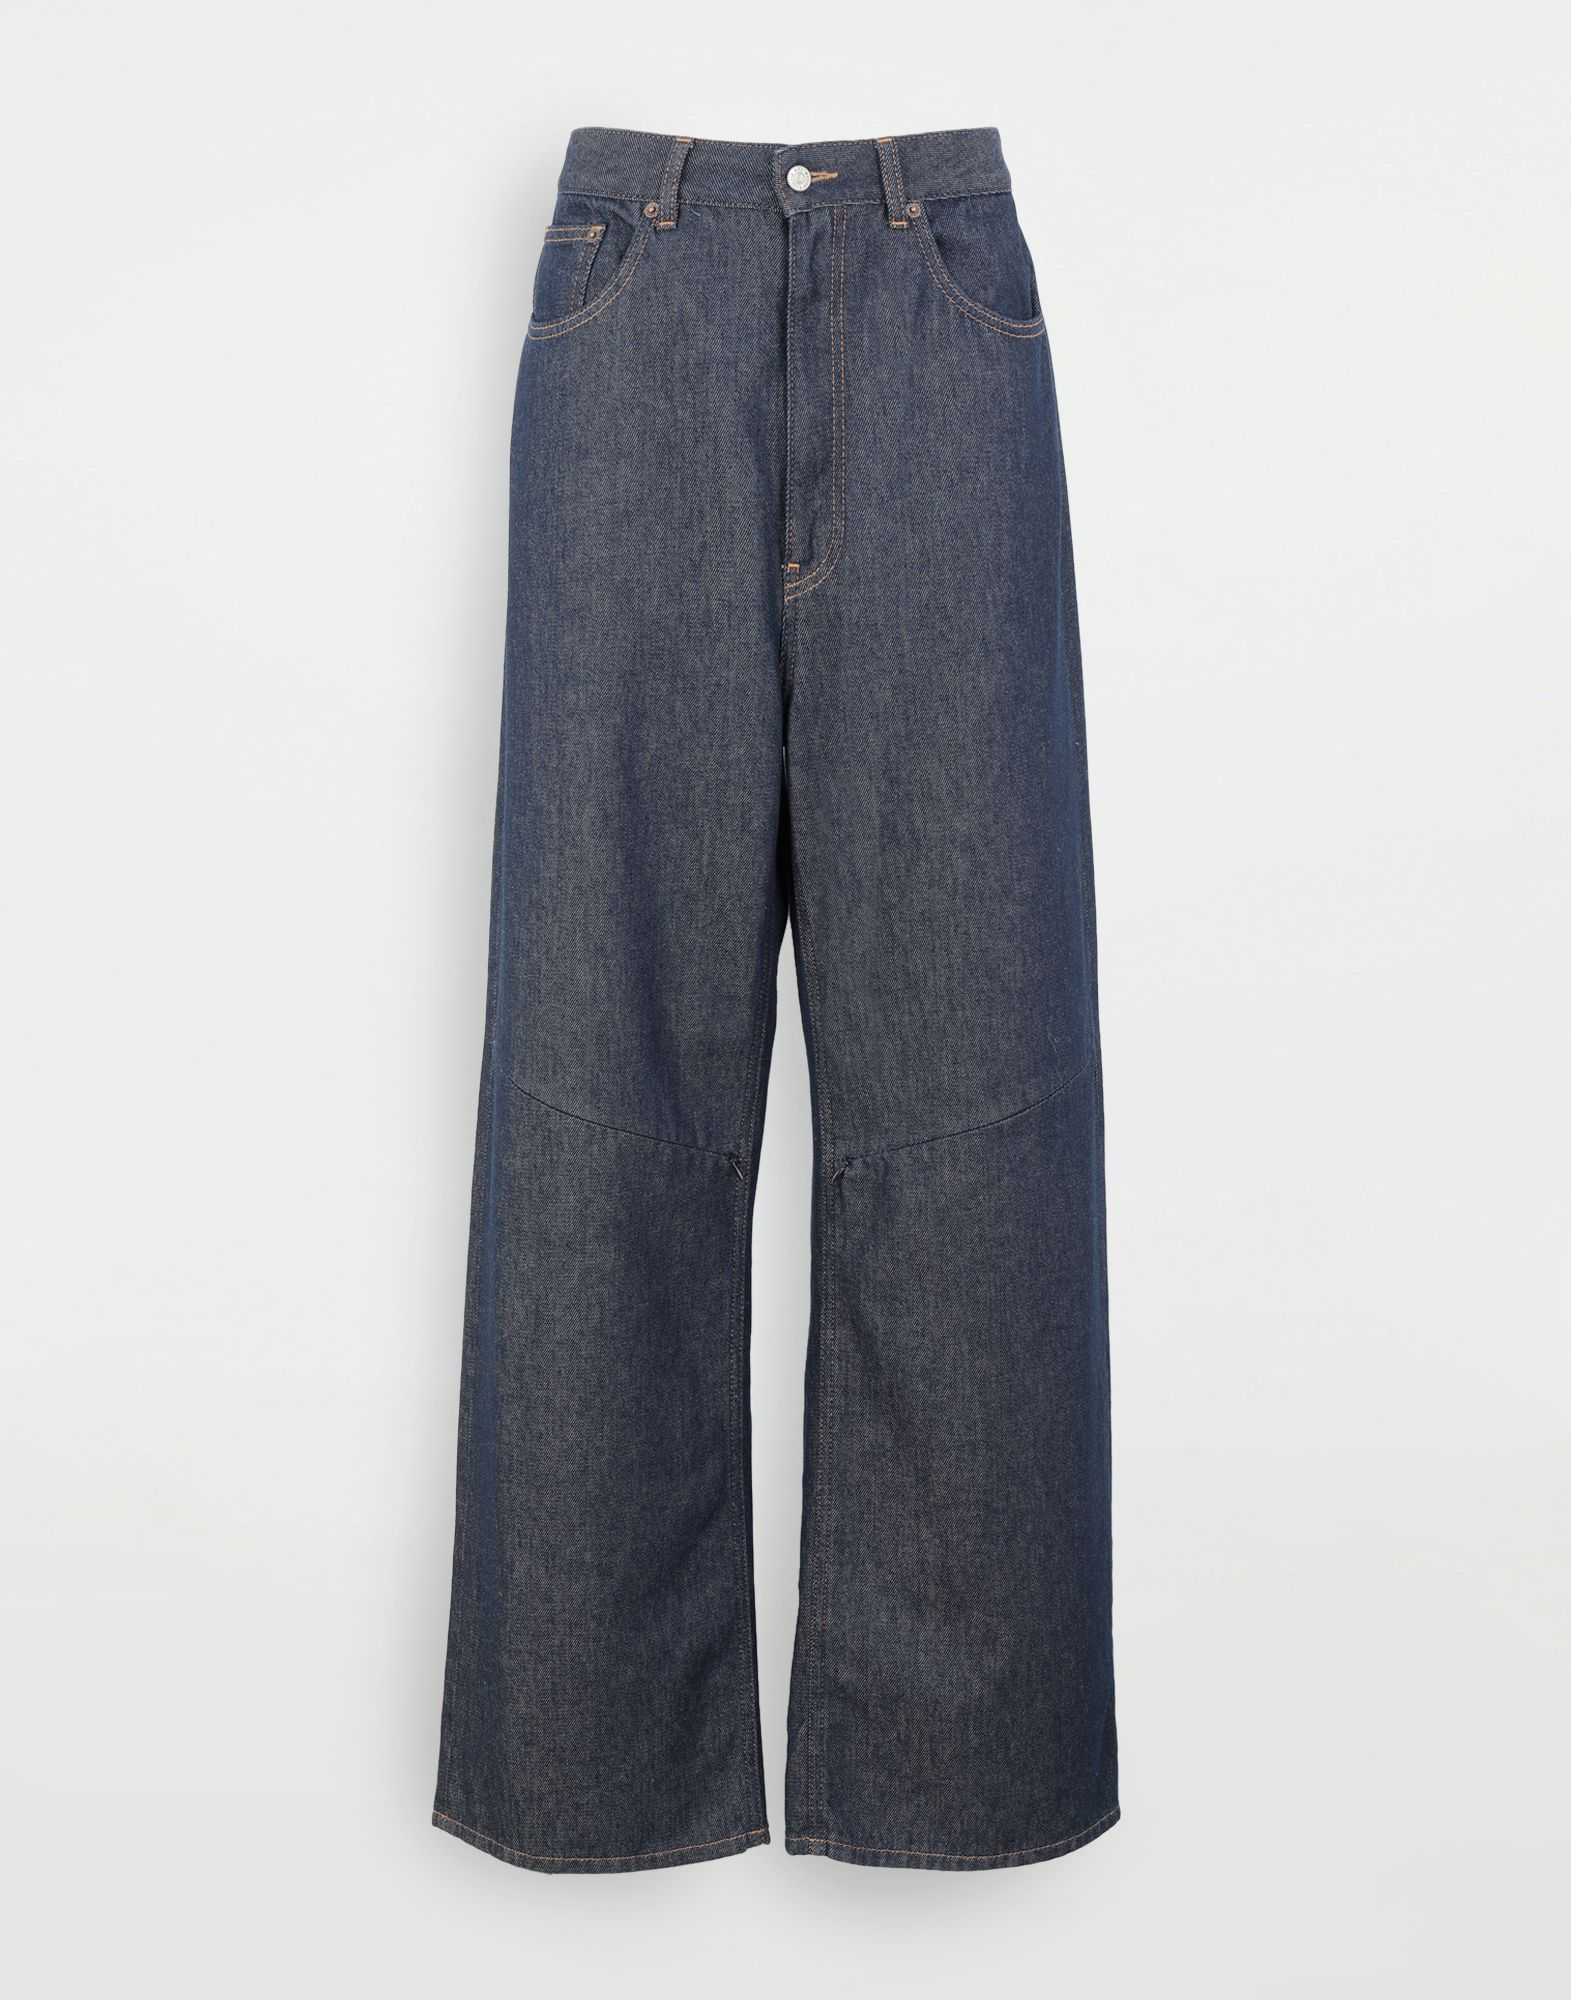 MM6 MAISON MARGIELA High-waisted multi-wear jeans Jeans Woman f